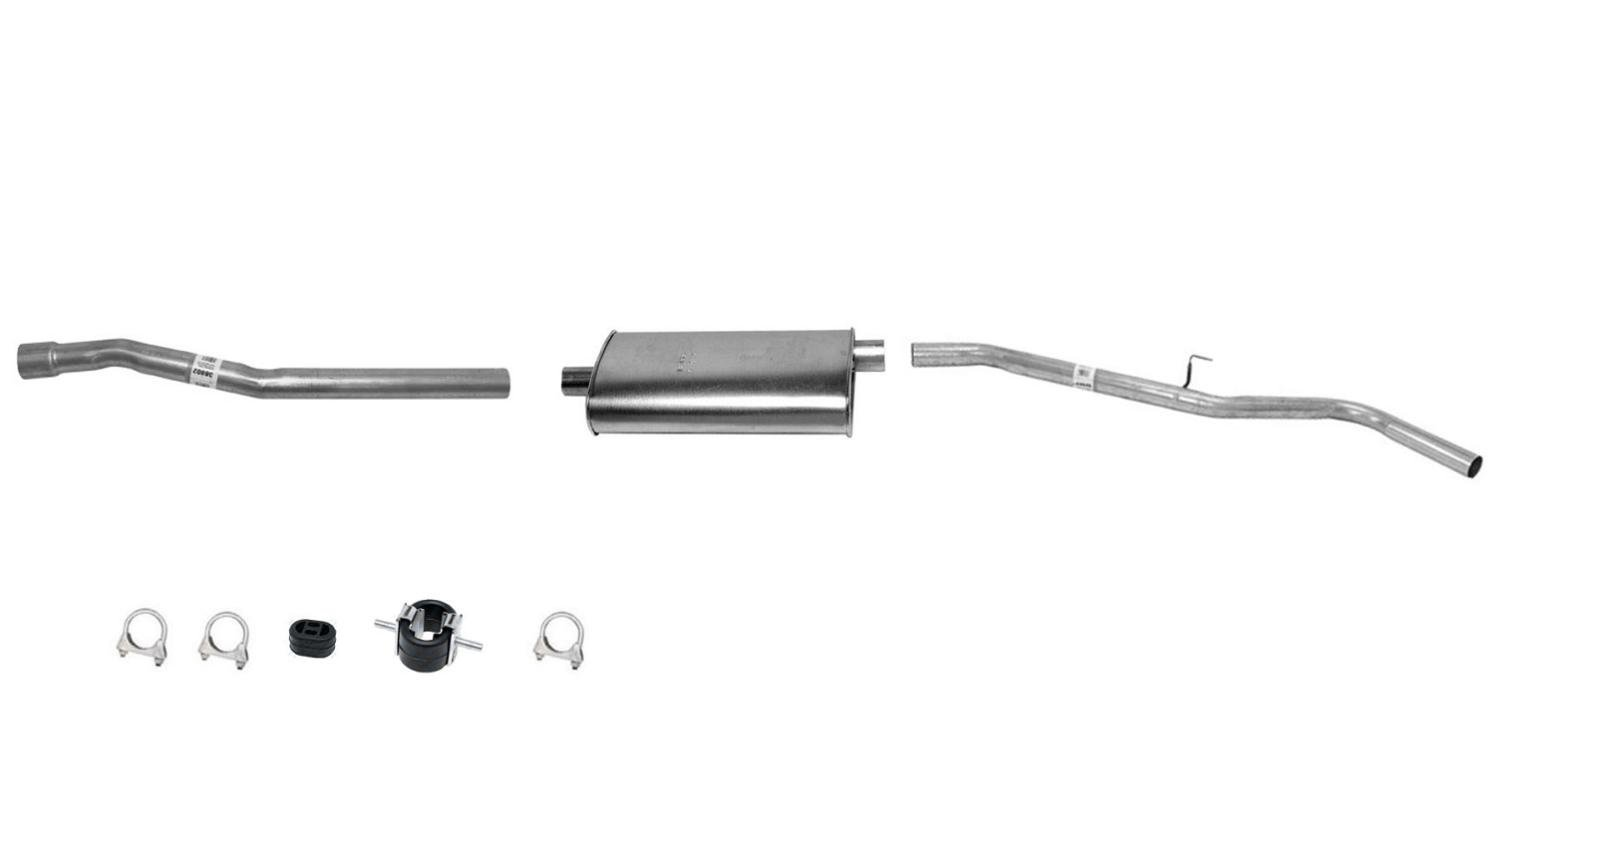 Mac Auto Parts 40143 Frontier 3.3 Muffler Exhaust Pipe System 1 W/B Long Bed Inc Crew Cab